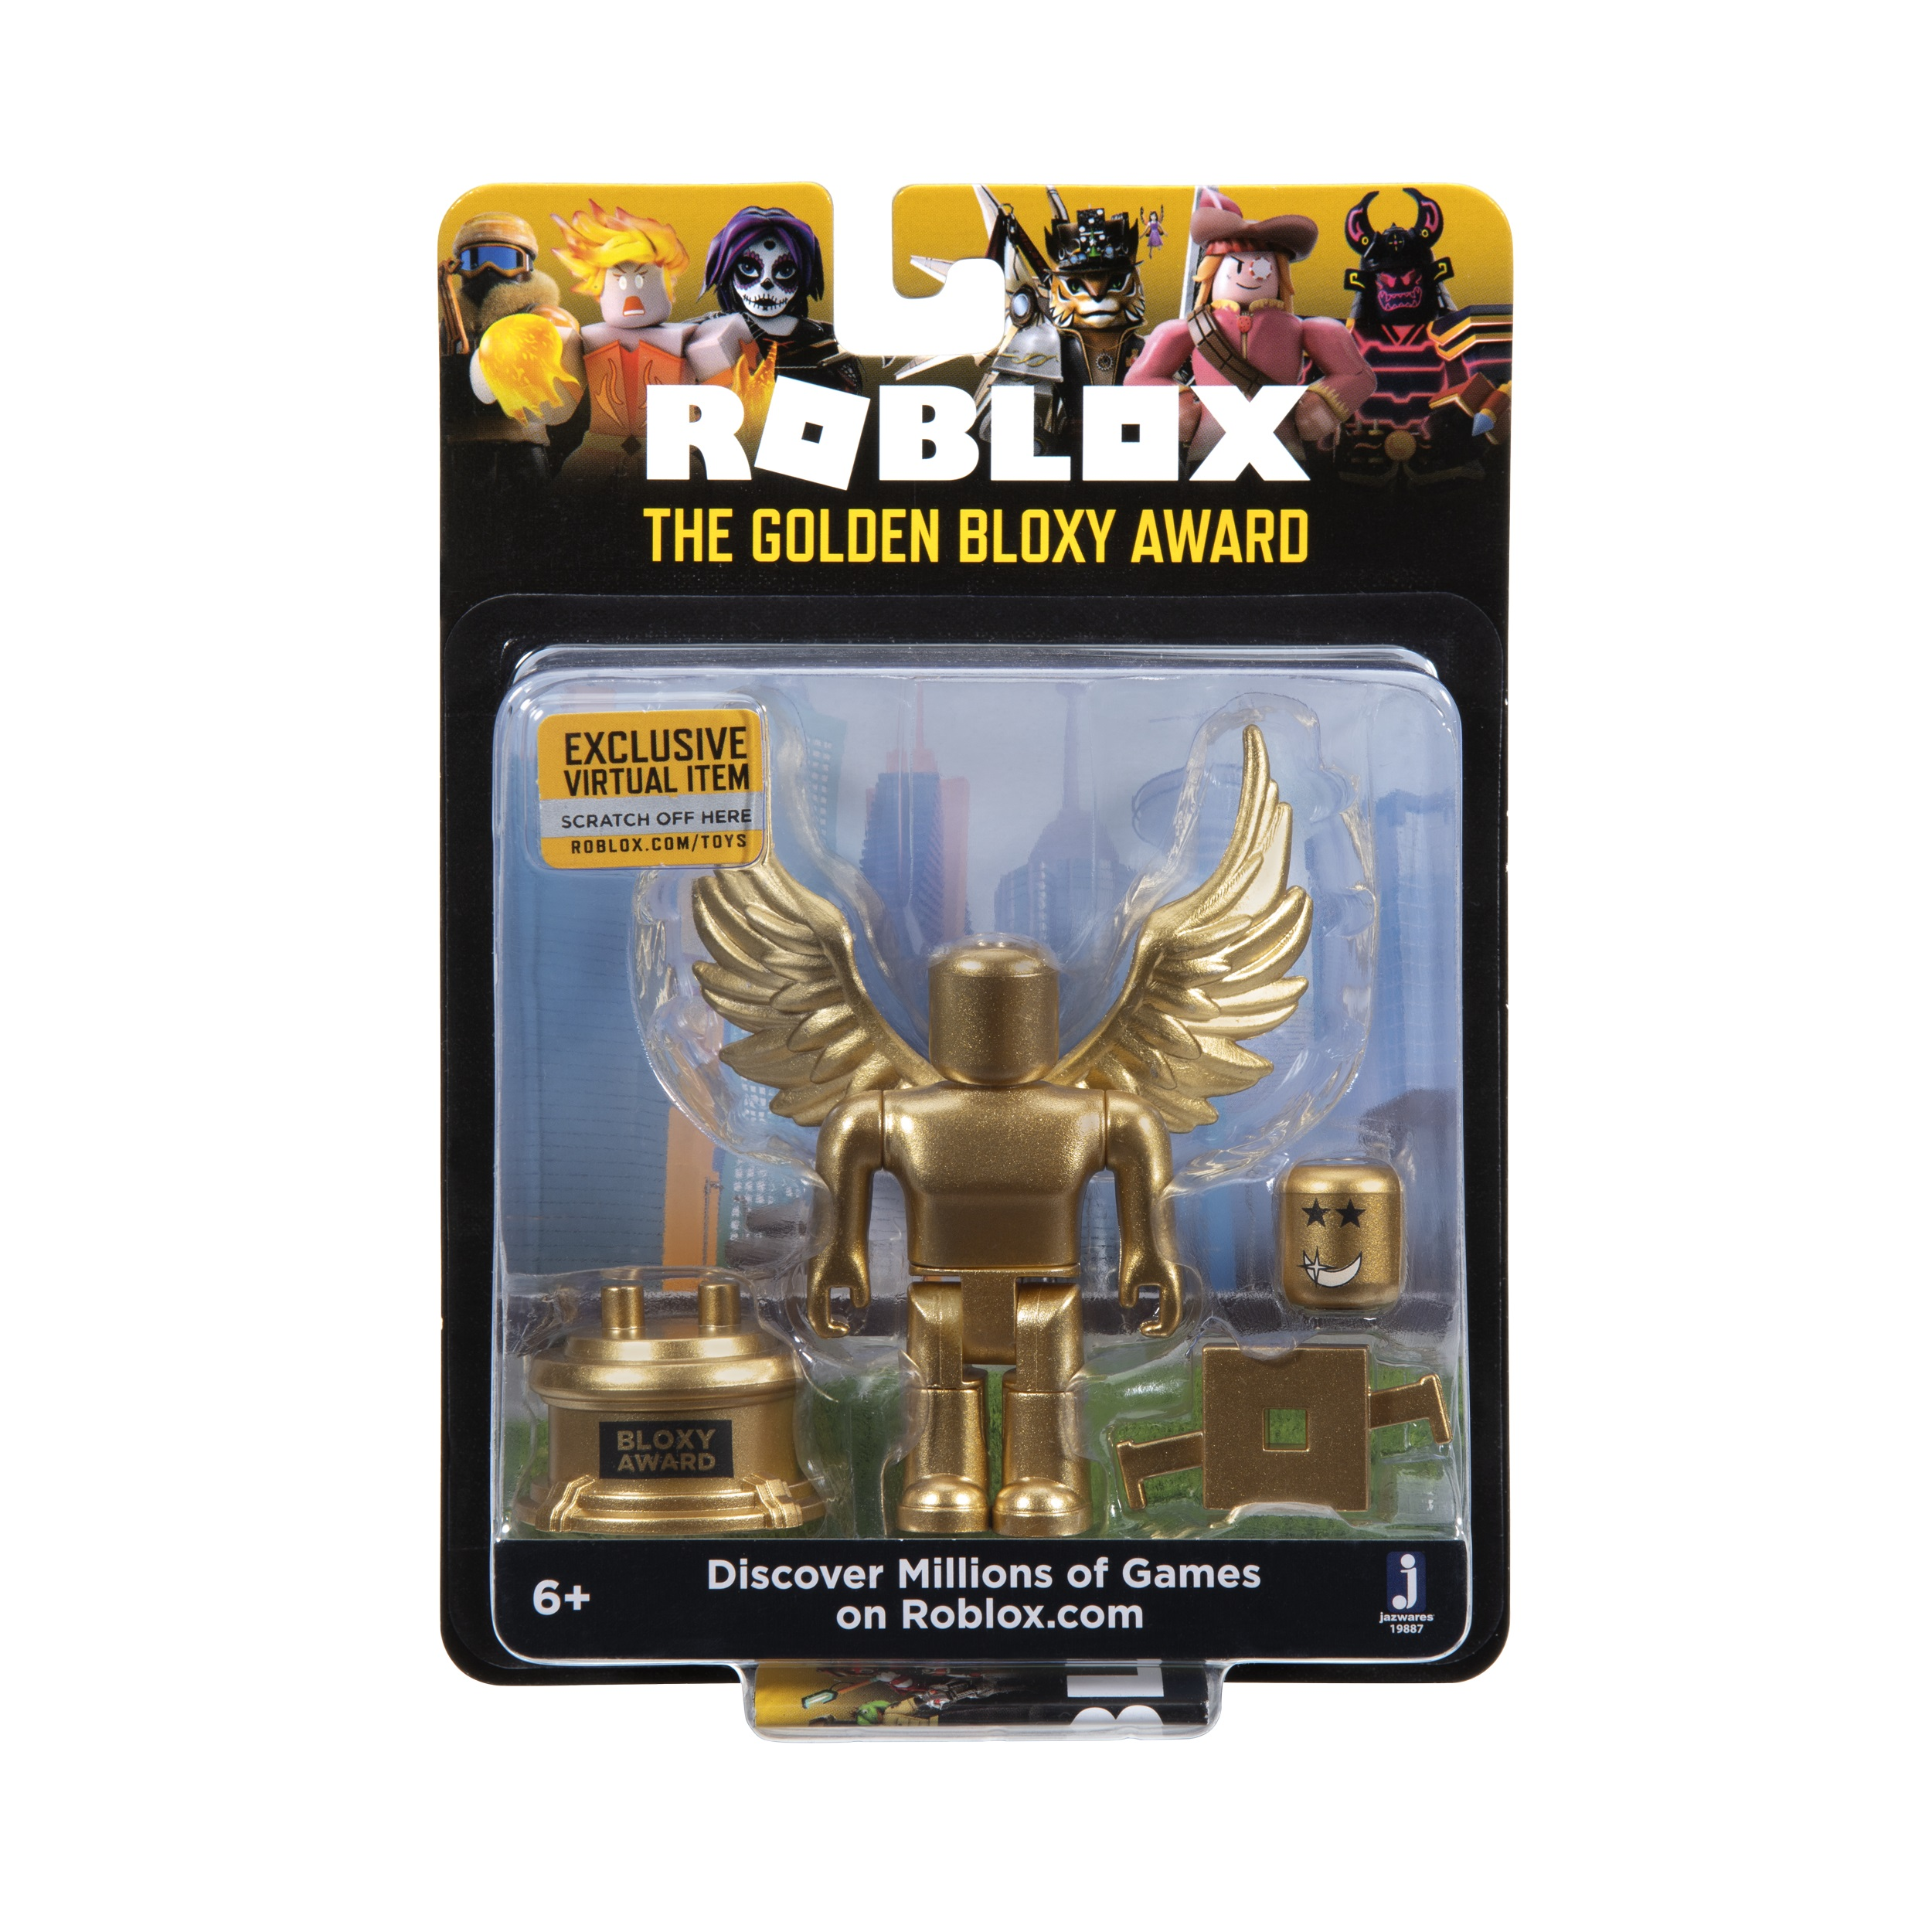 Roblox Celebrity Collection The Golden Bloxy Award Figure Pack Includes Exclusive Virtual Item Walmart Com Walmart Com